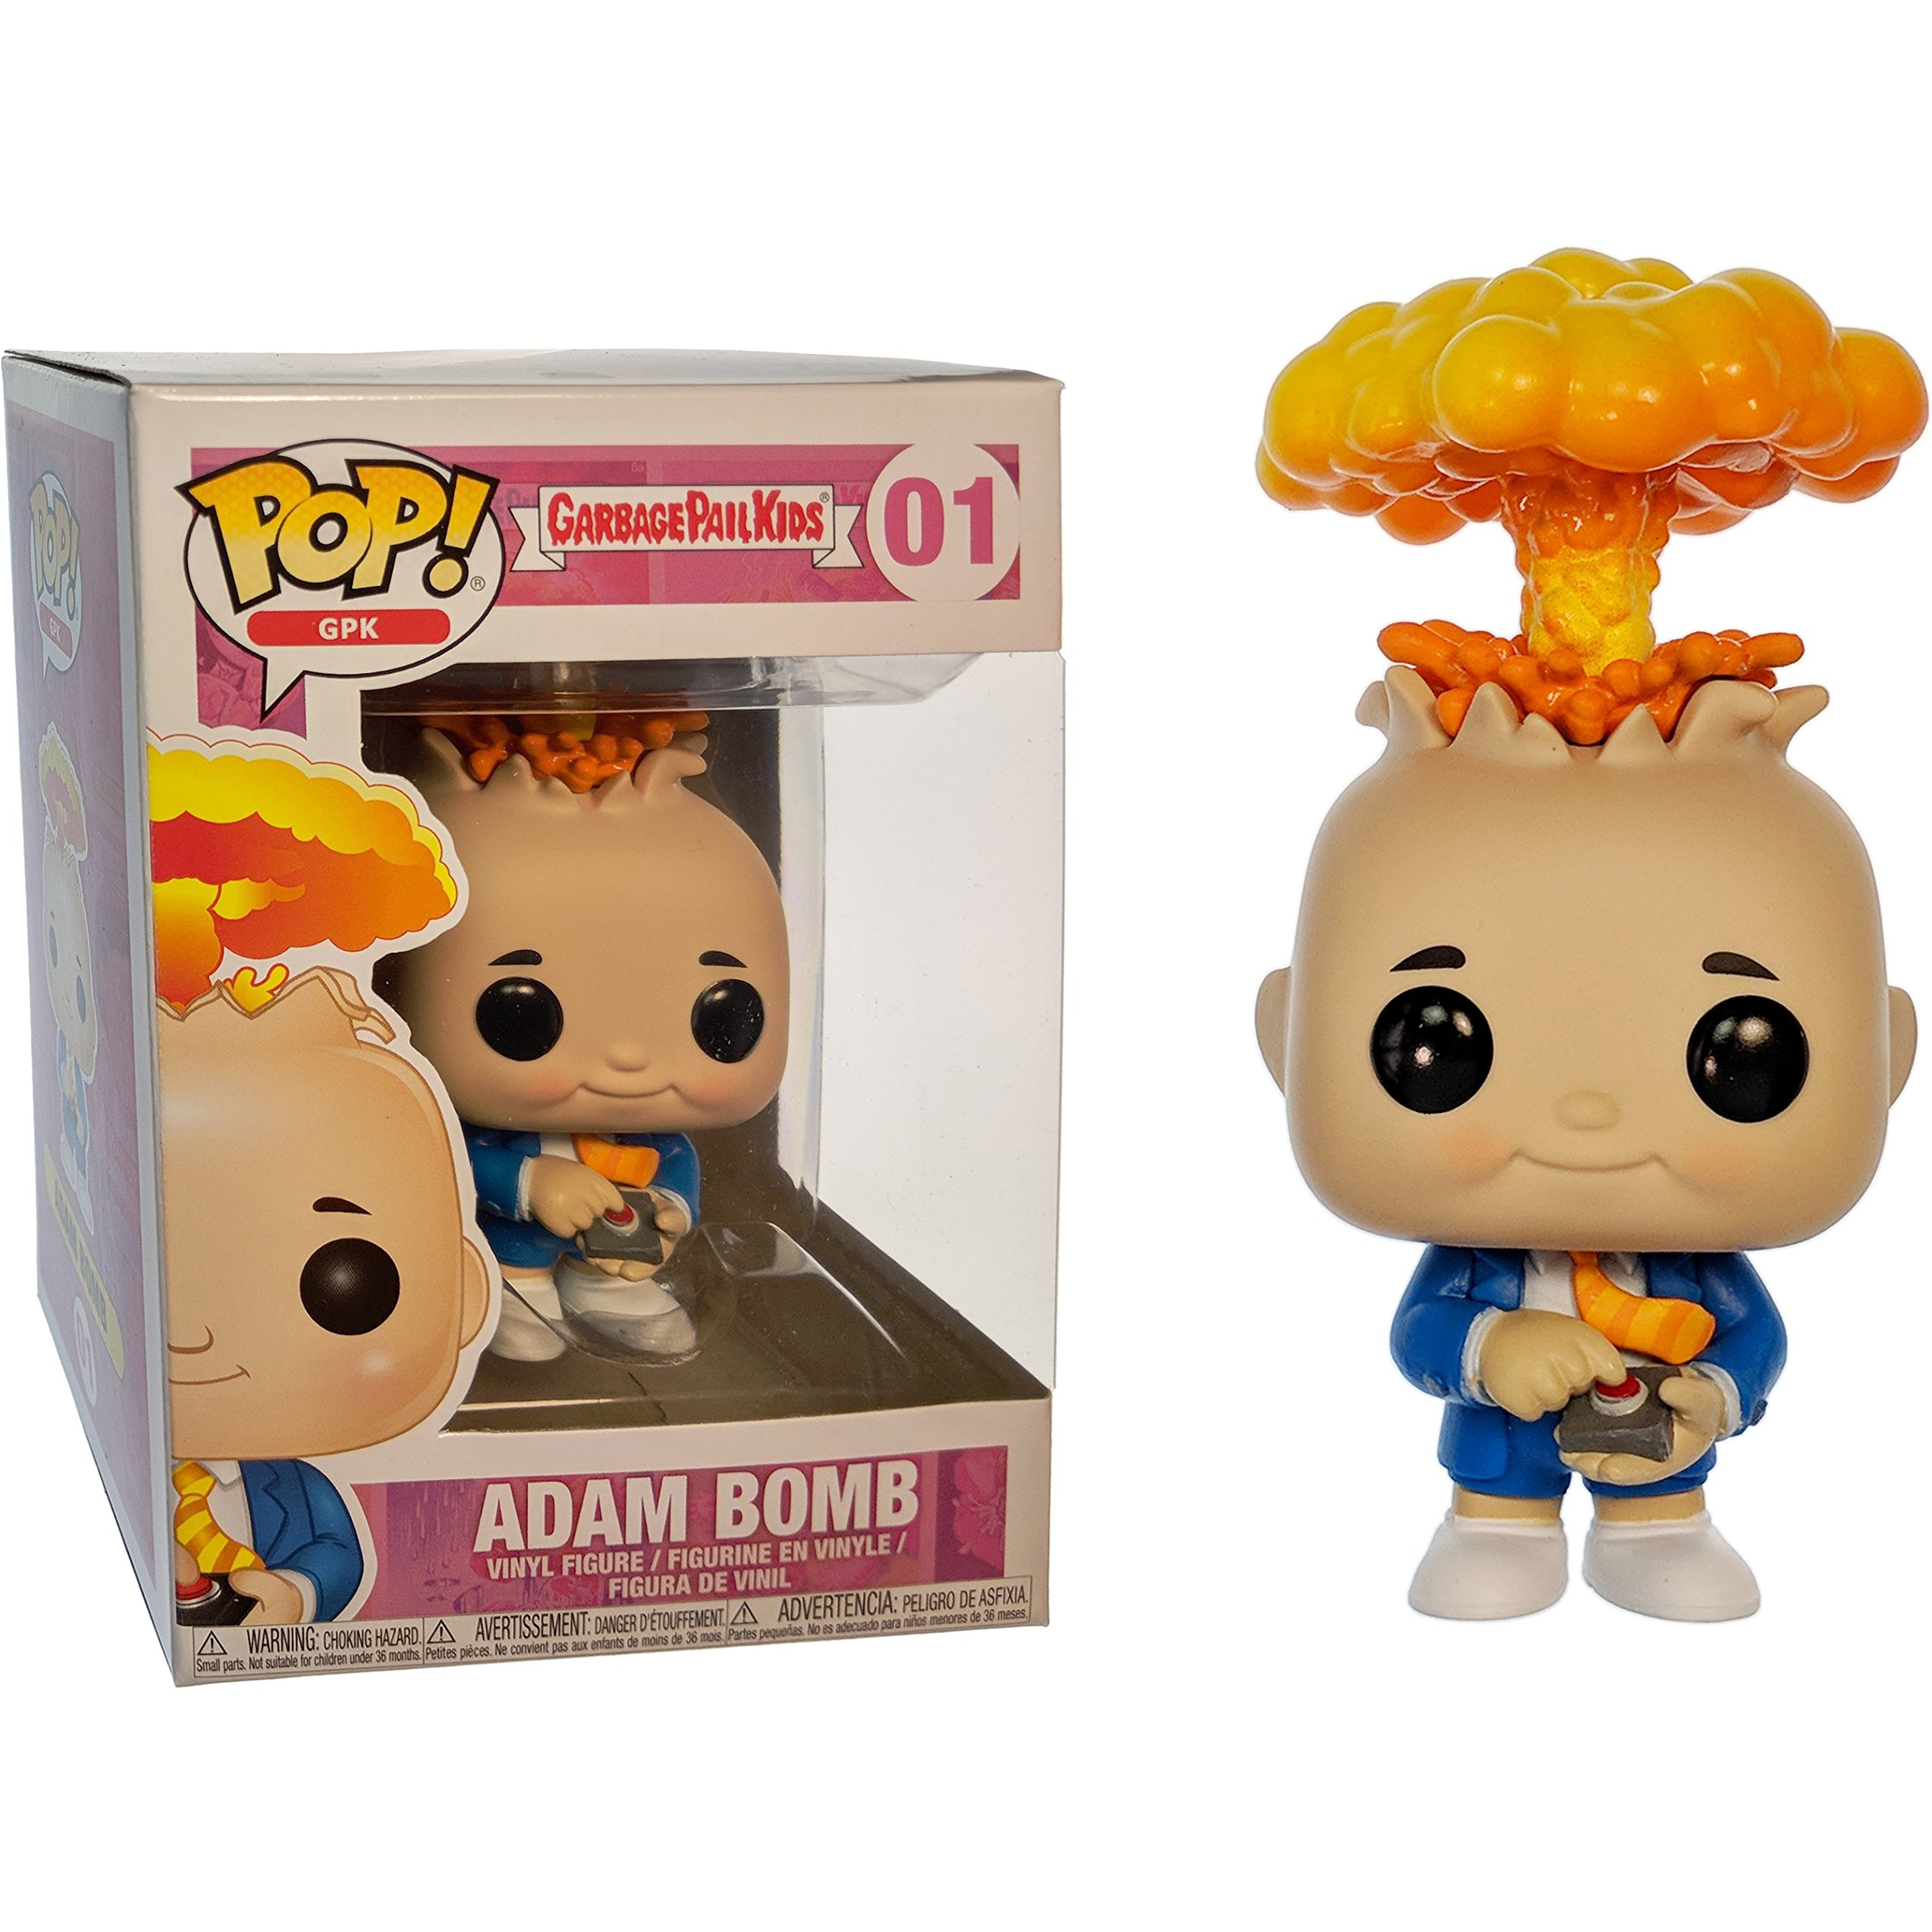 Funko Adam Bomb POP! GPK x Garbage Pail Kids Vinyl Figure + 1 Video Games Themed Trading Card Bundle [#001 / 26003]